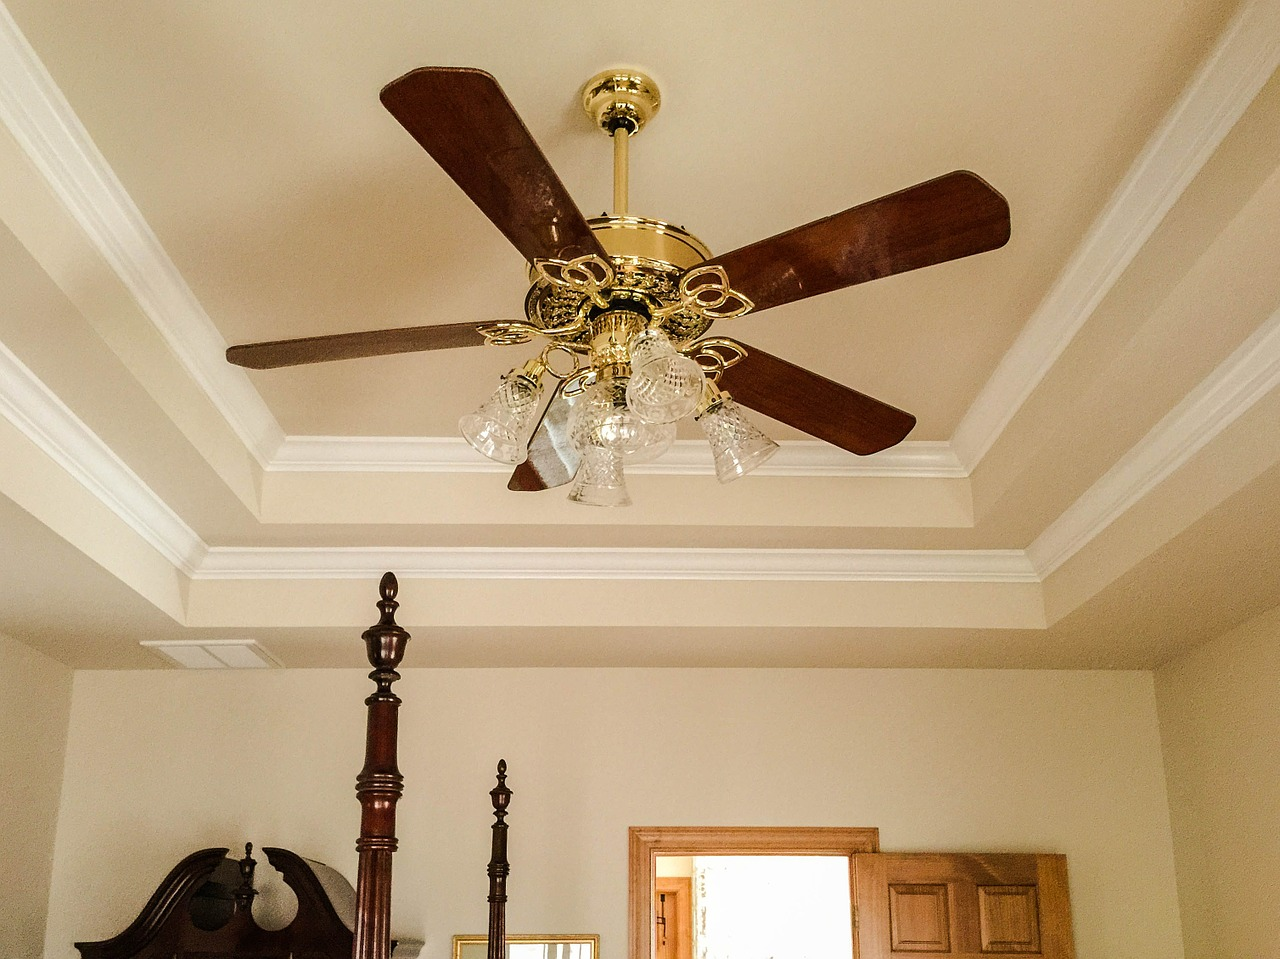 The humble Ceiling Fan may be criticized by some, but it is has many useful purposes in your home ... photo by CC user JamesDeMers on pixabay